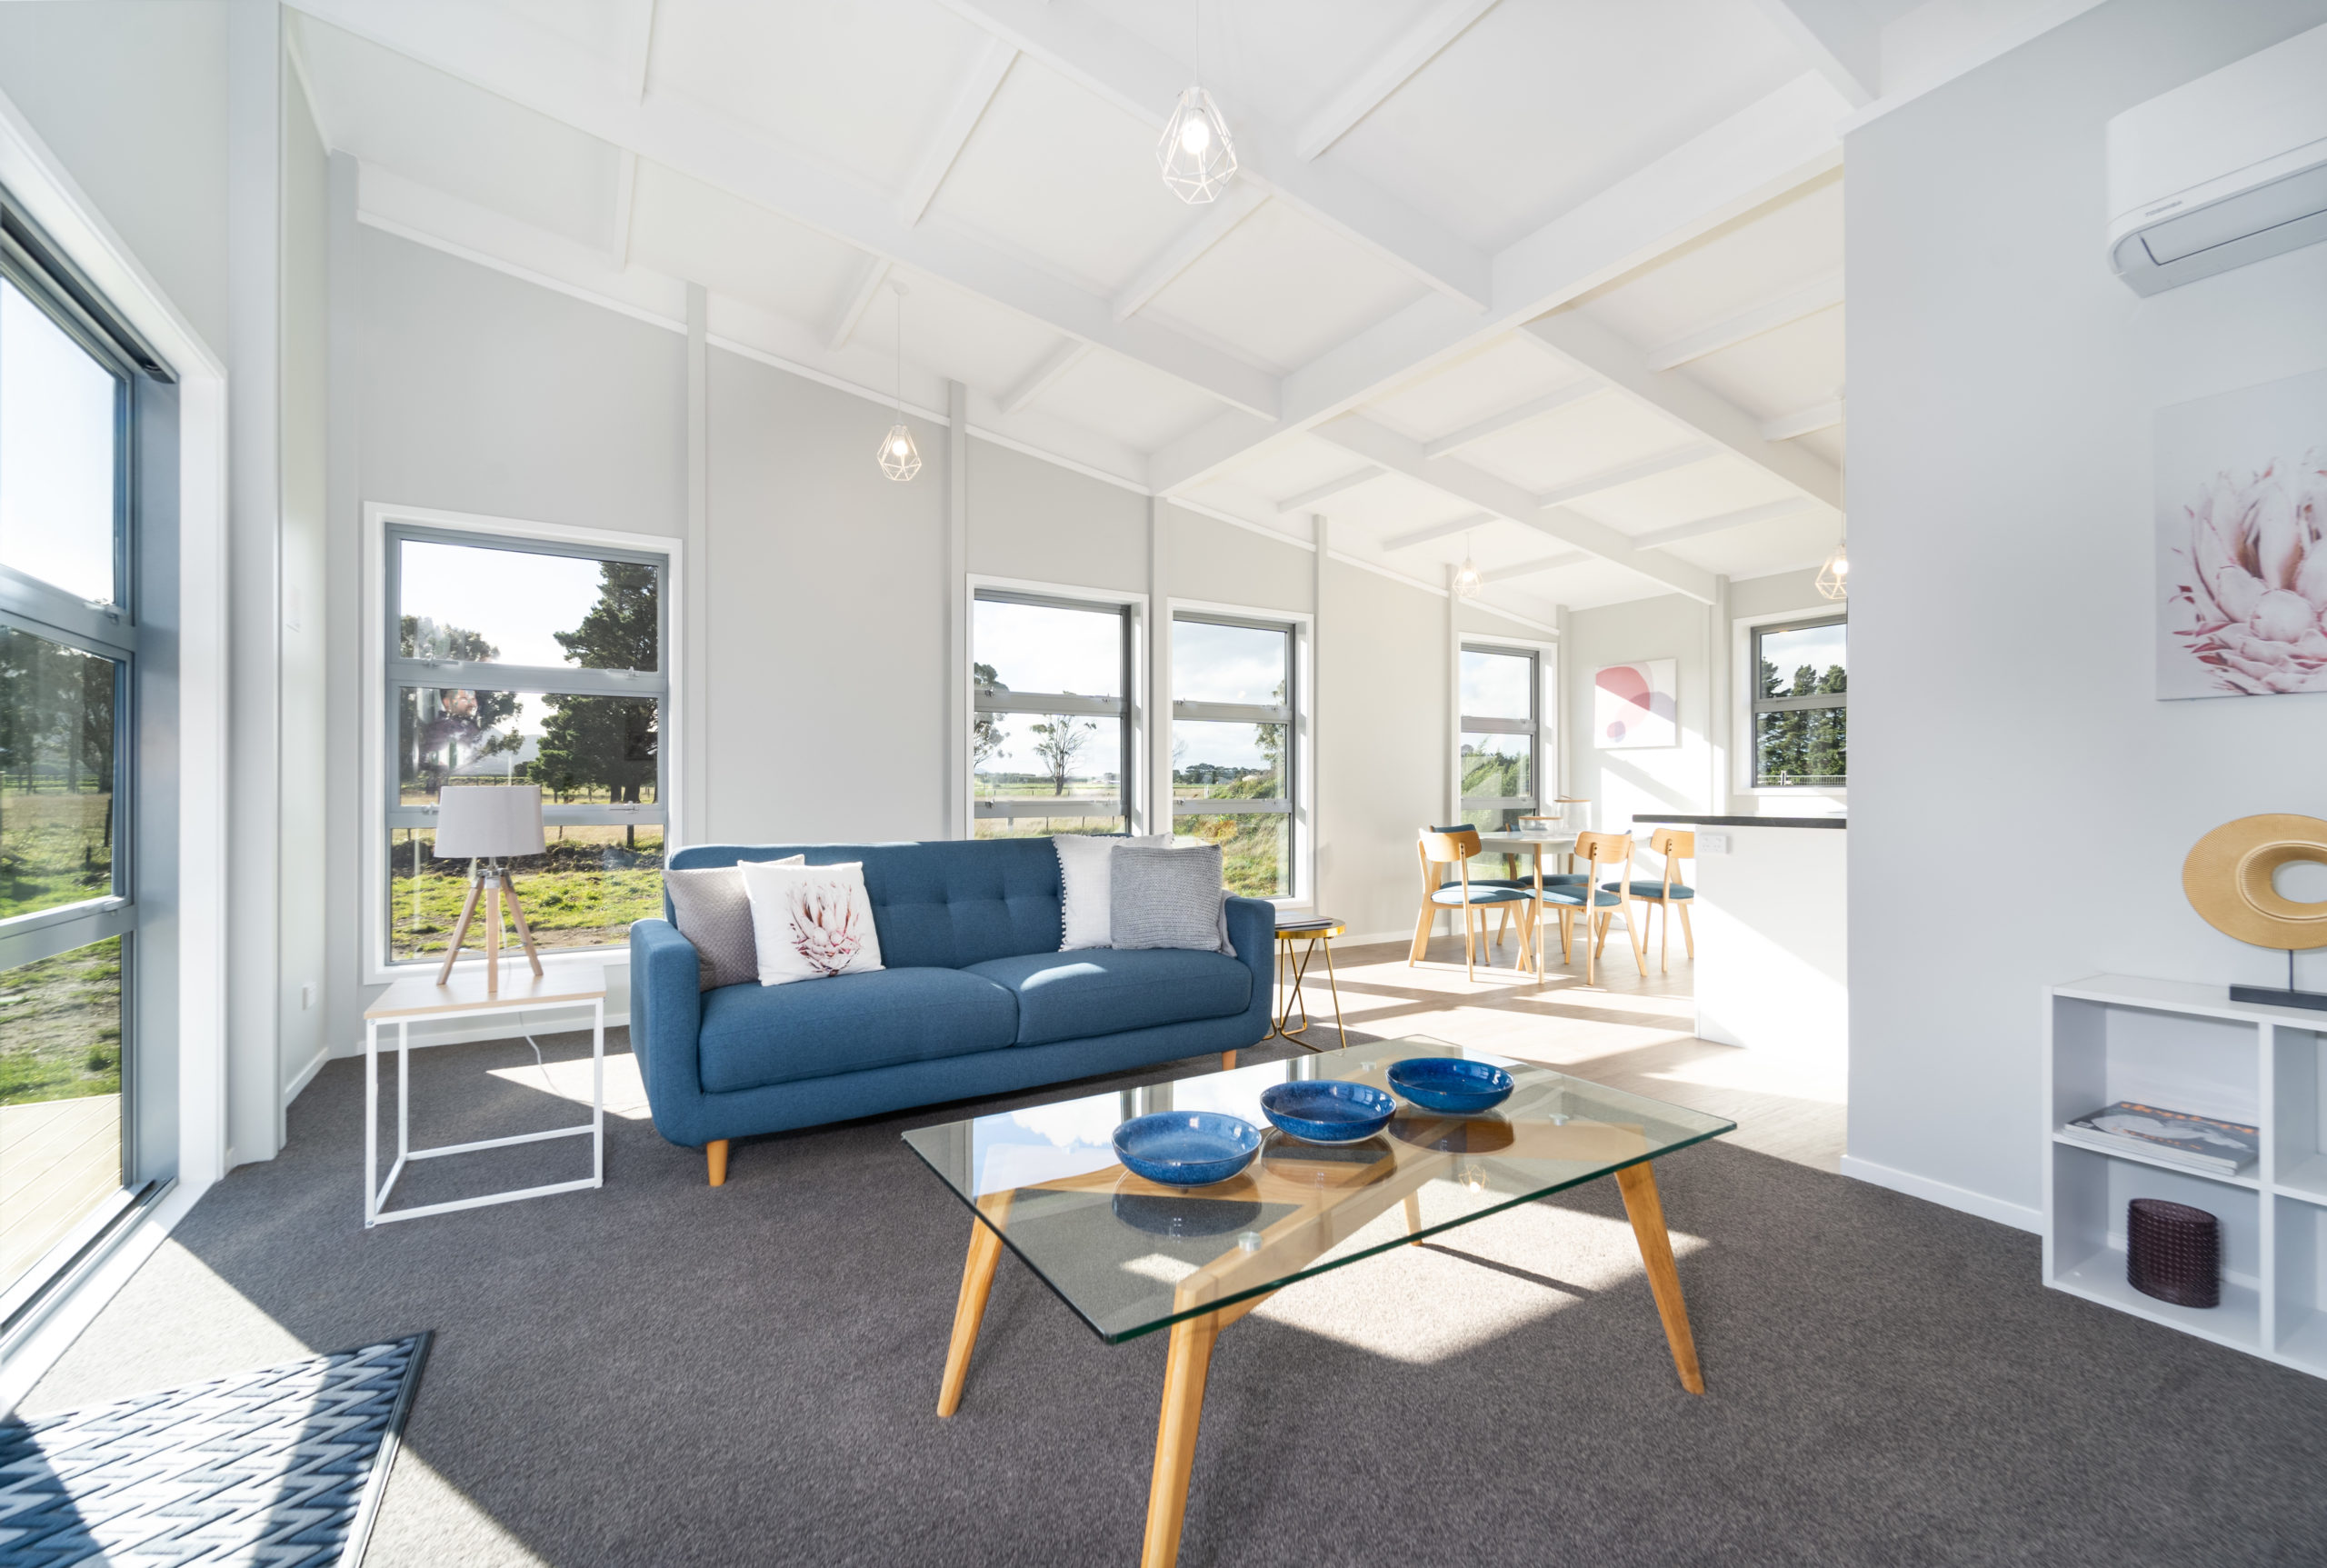 EasyBuild Open Plan Living and Dining